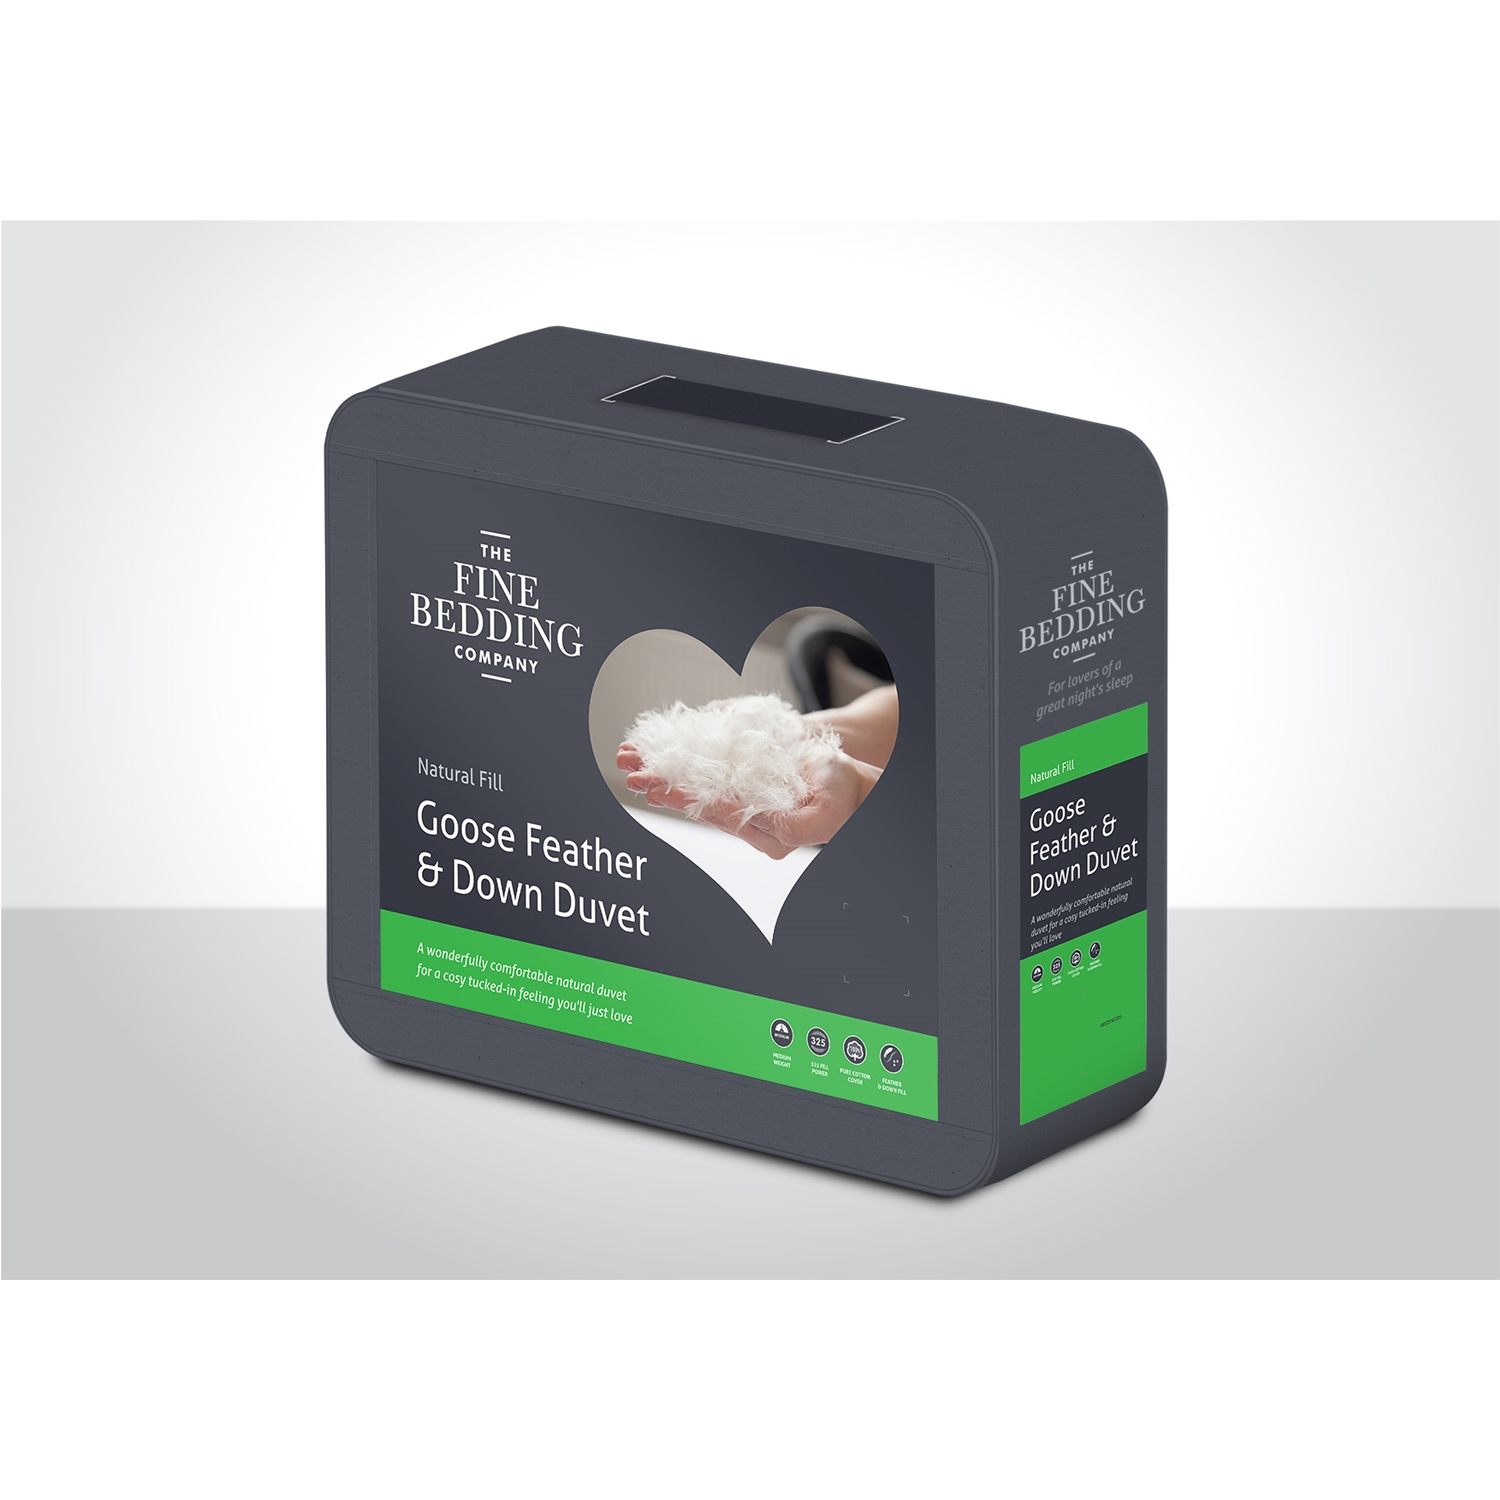 Image of Fine Bedding Company Goose Feather & Down Duvet, 10.5 Tog, Single